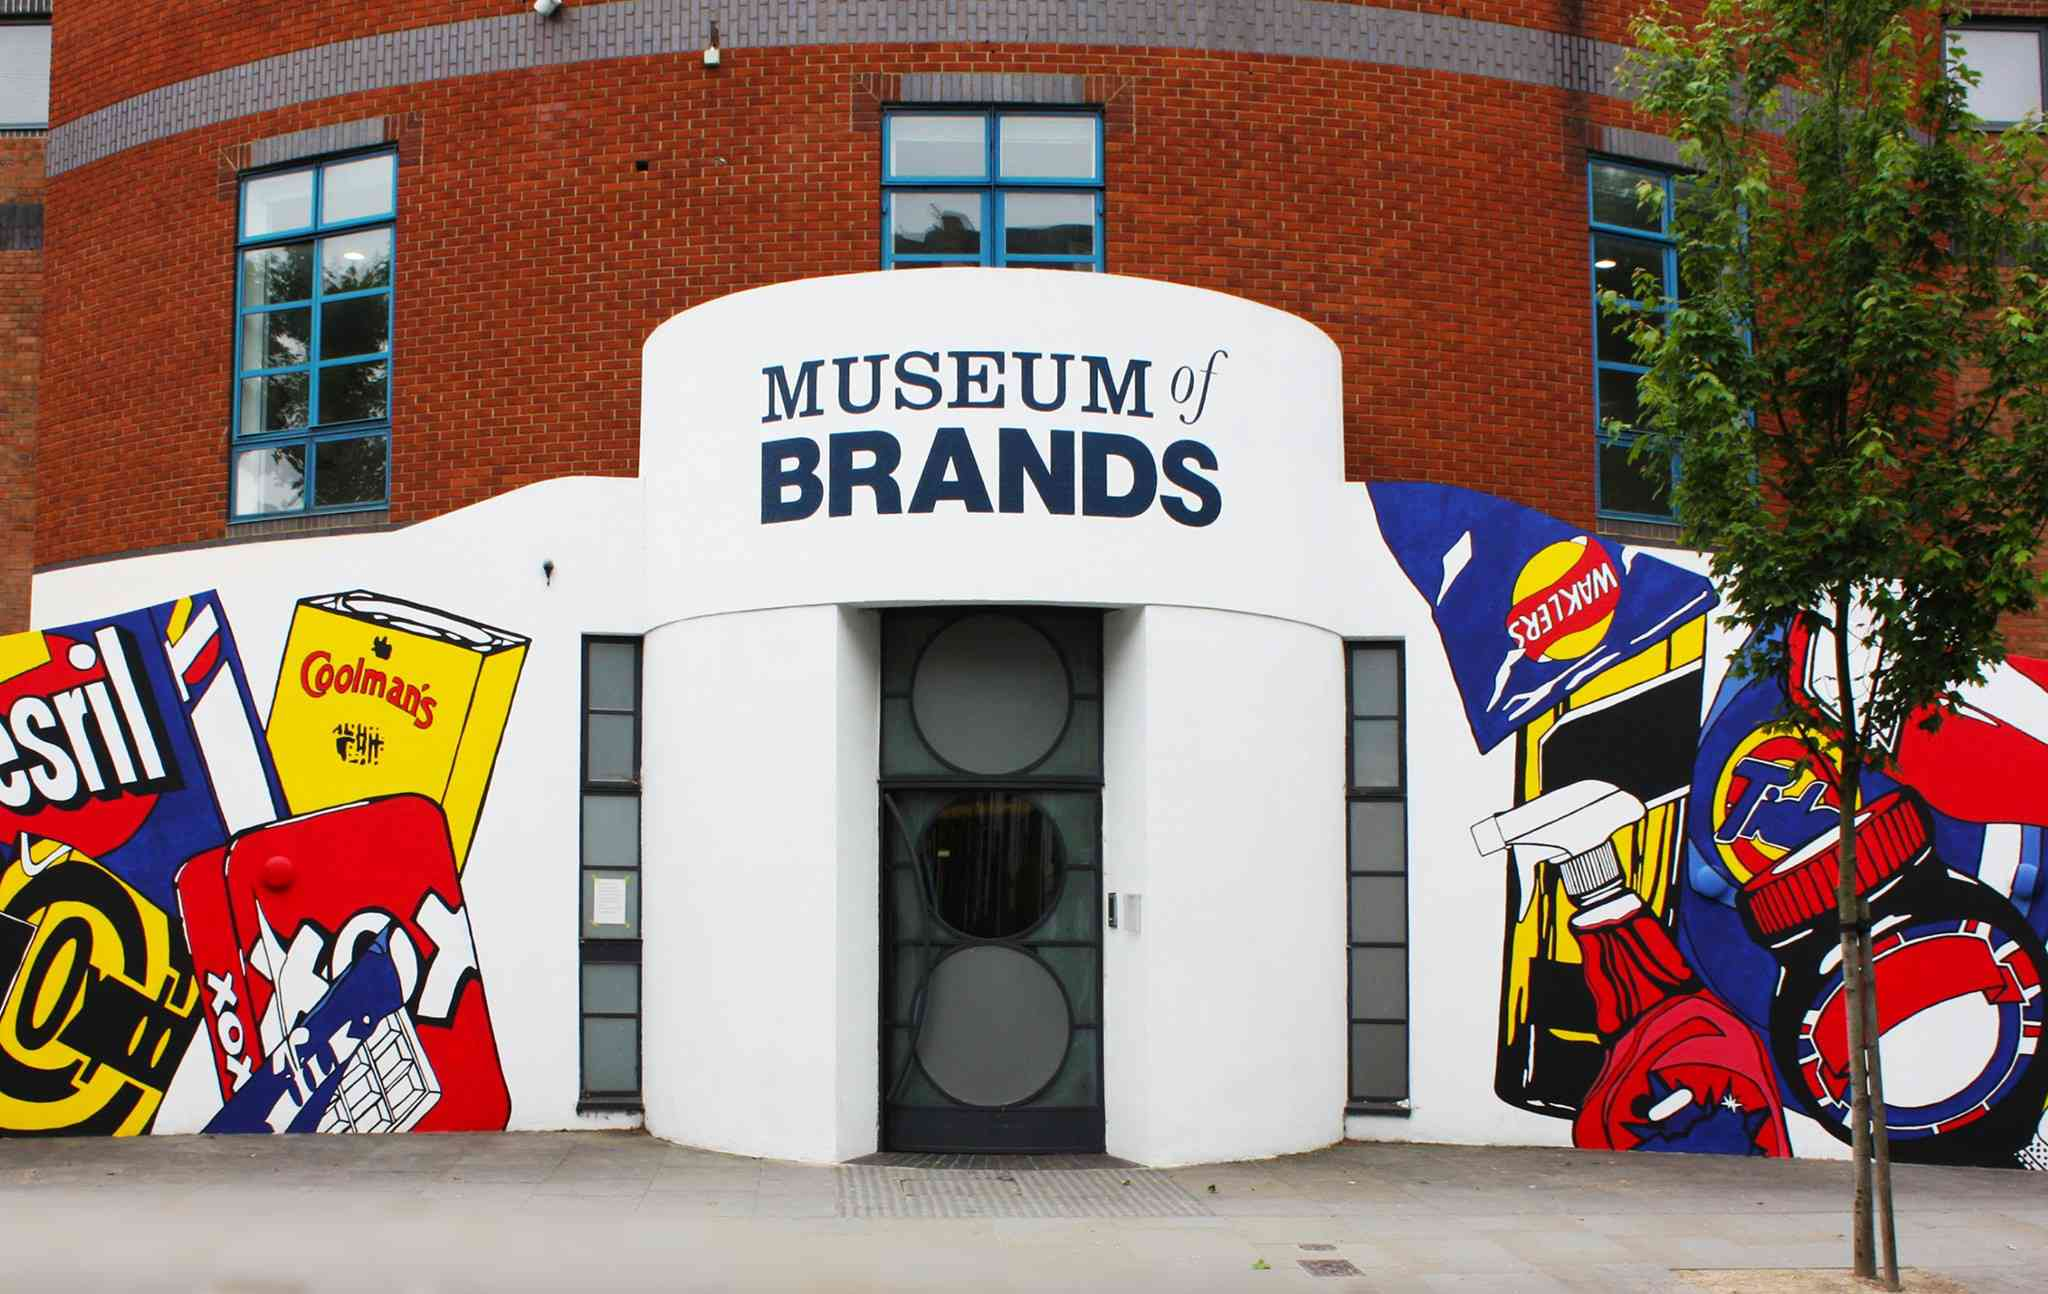 Exterior of Museum of Brands in Notting Hill